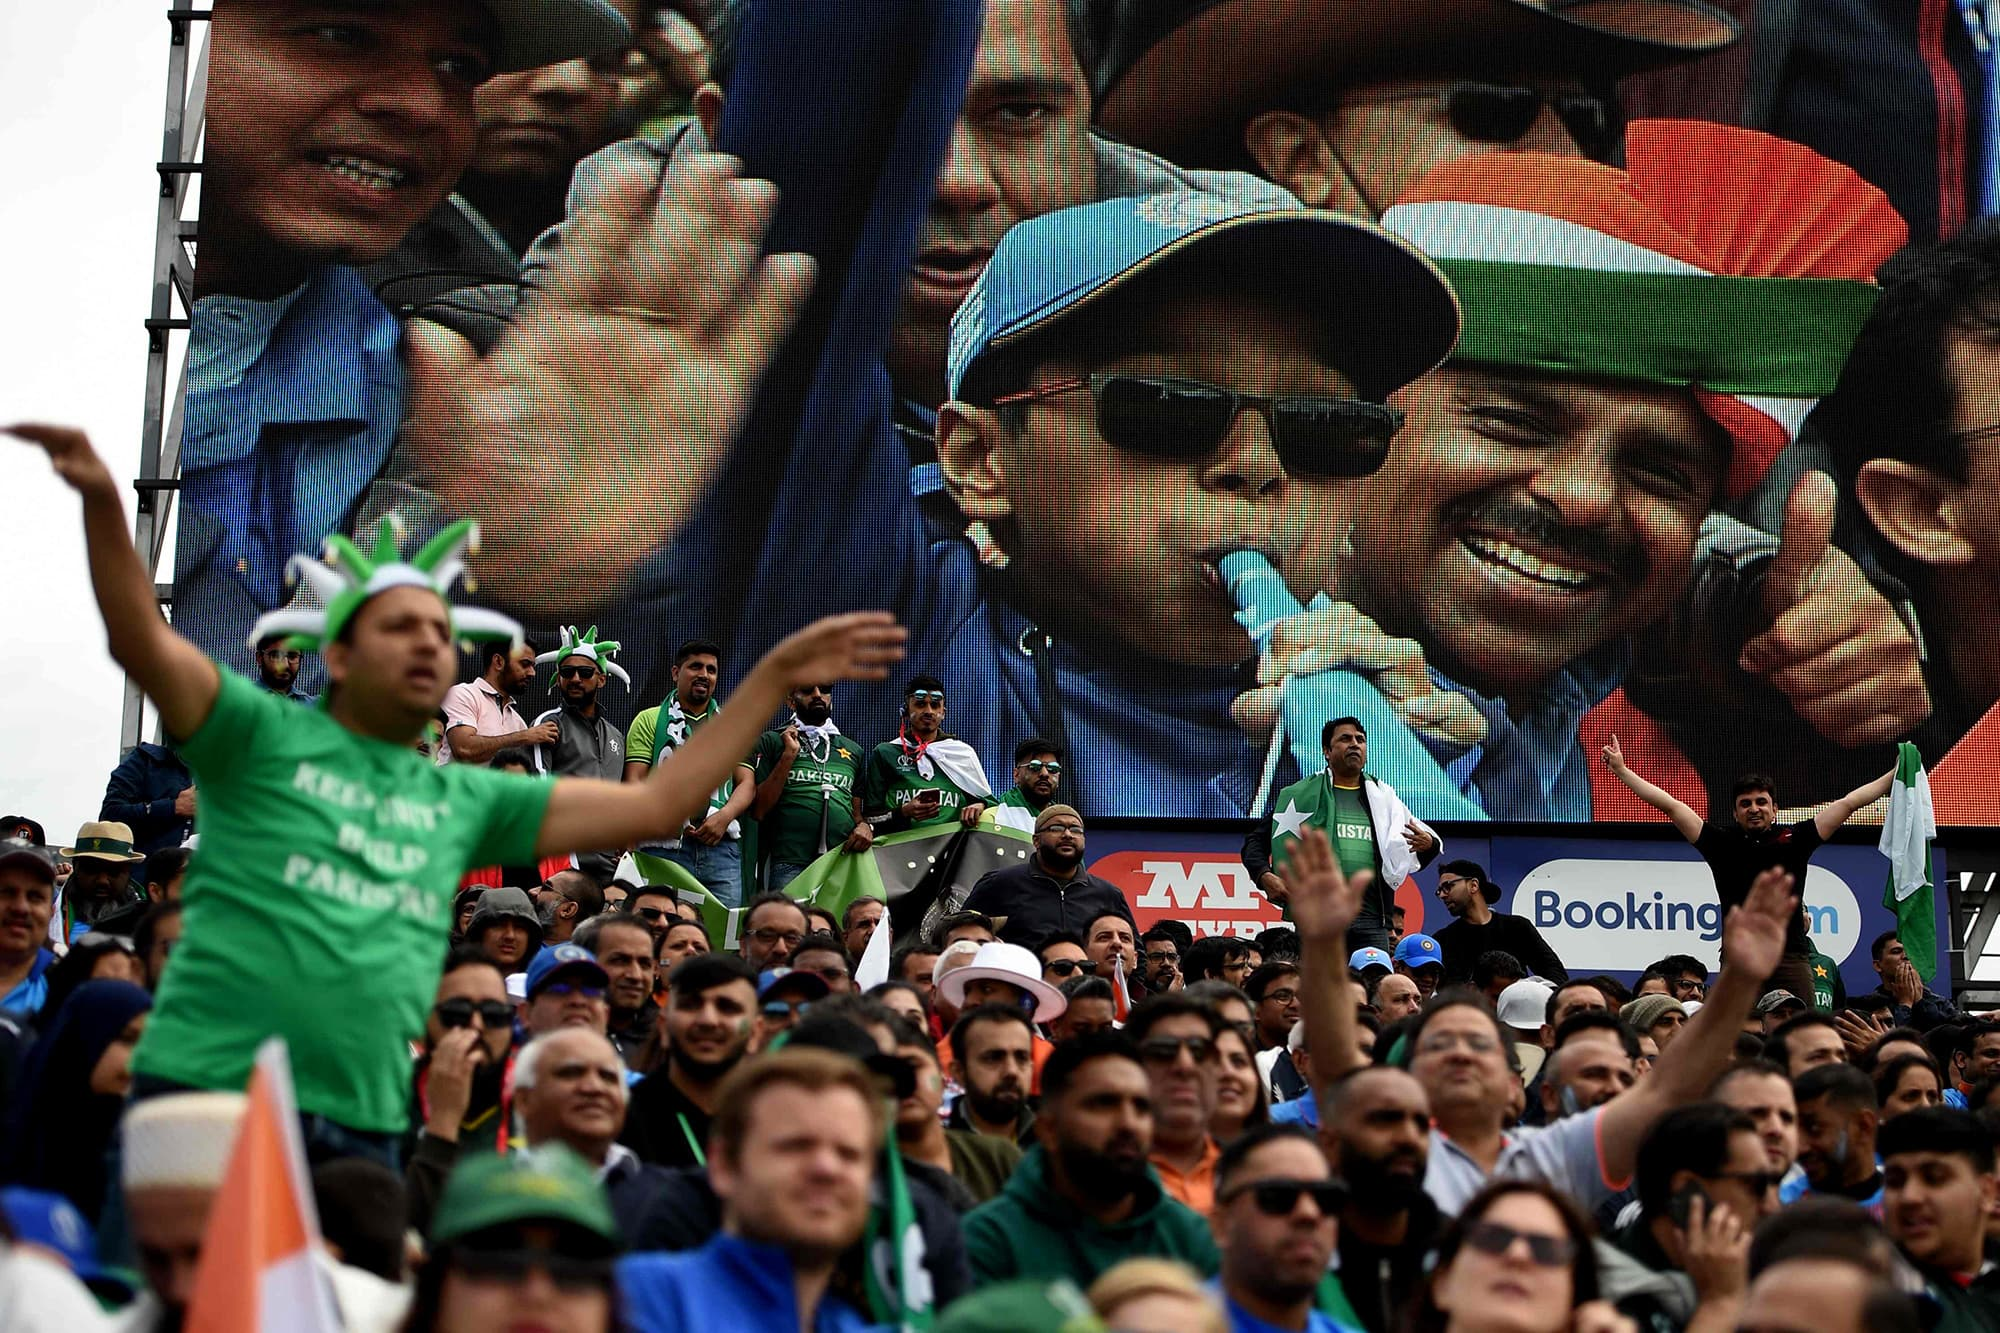 Indian and Pakistani supporters cheer on their teams during the match. ─ AFP